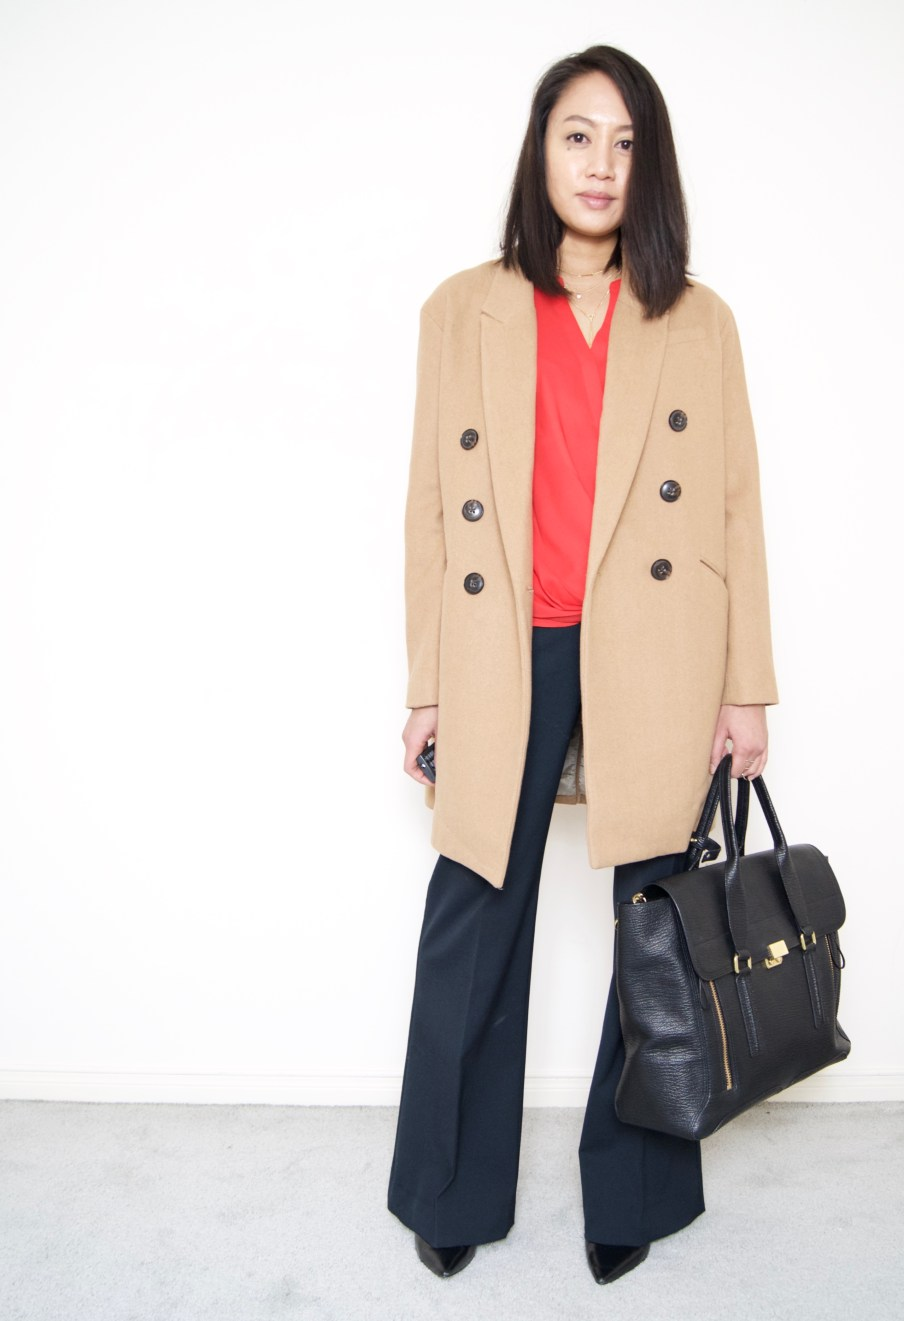 DRESSED ACCORDINGLY BLOG / Camel Coat + Wide Leg Pants + Coral Wrap Blouse